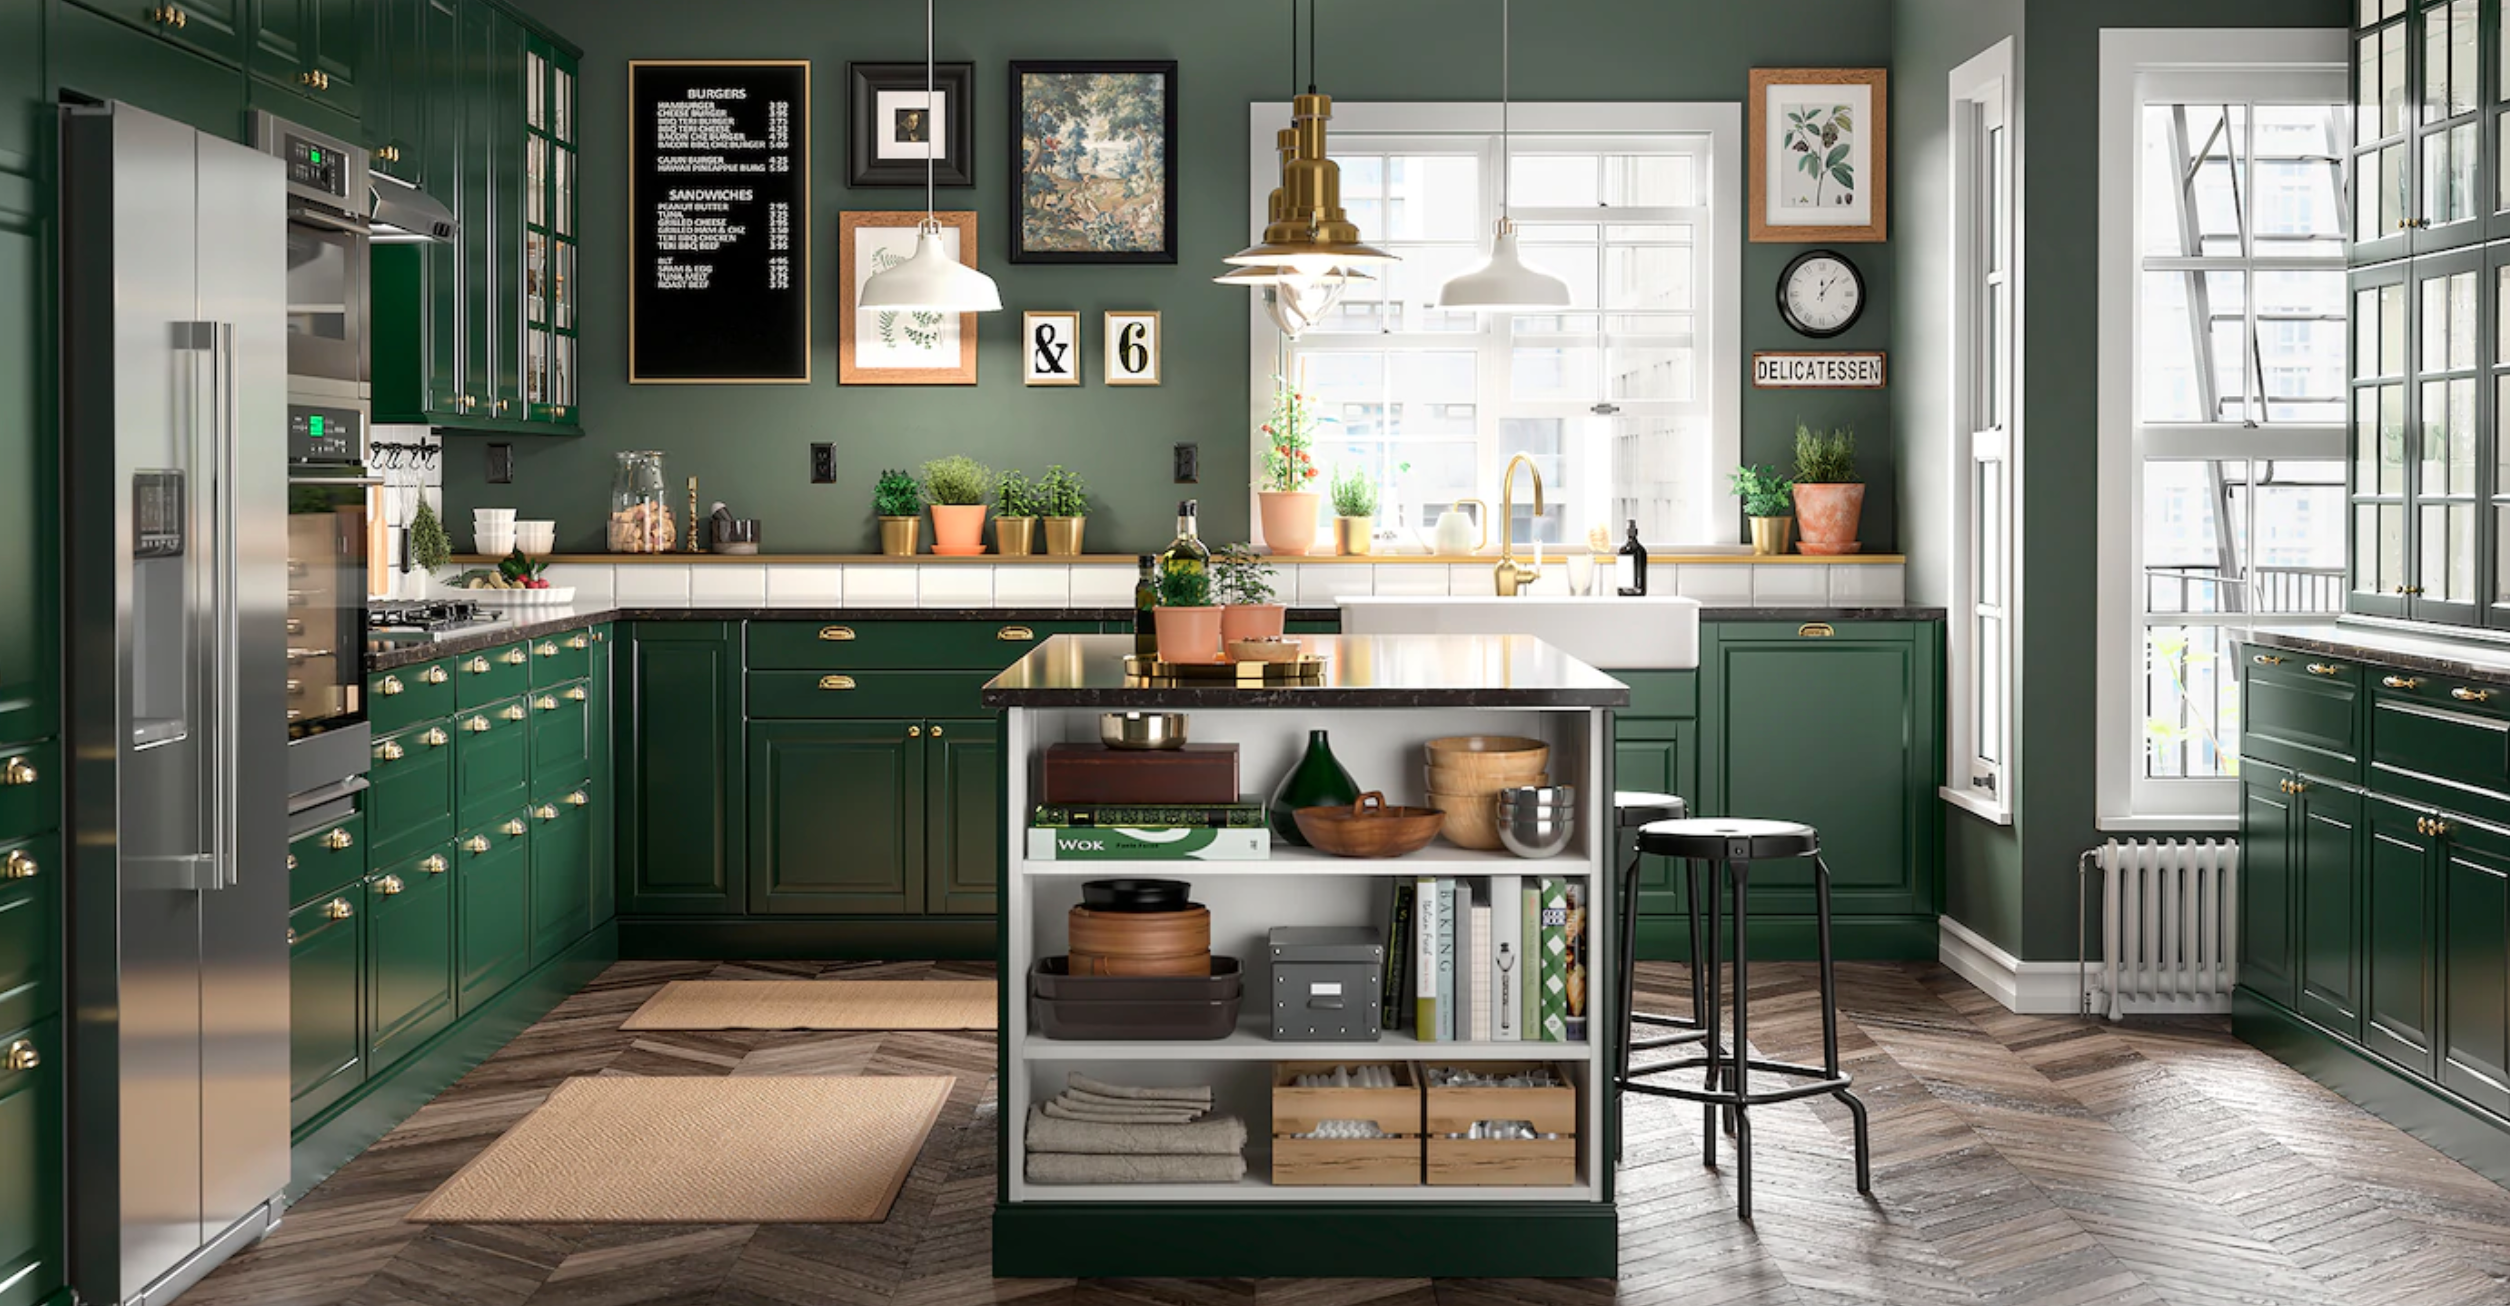 IKEA kitchen image taken with 3D product photography